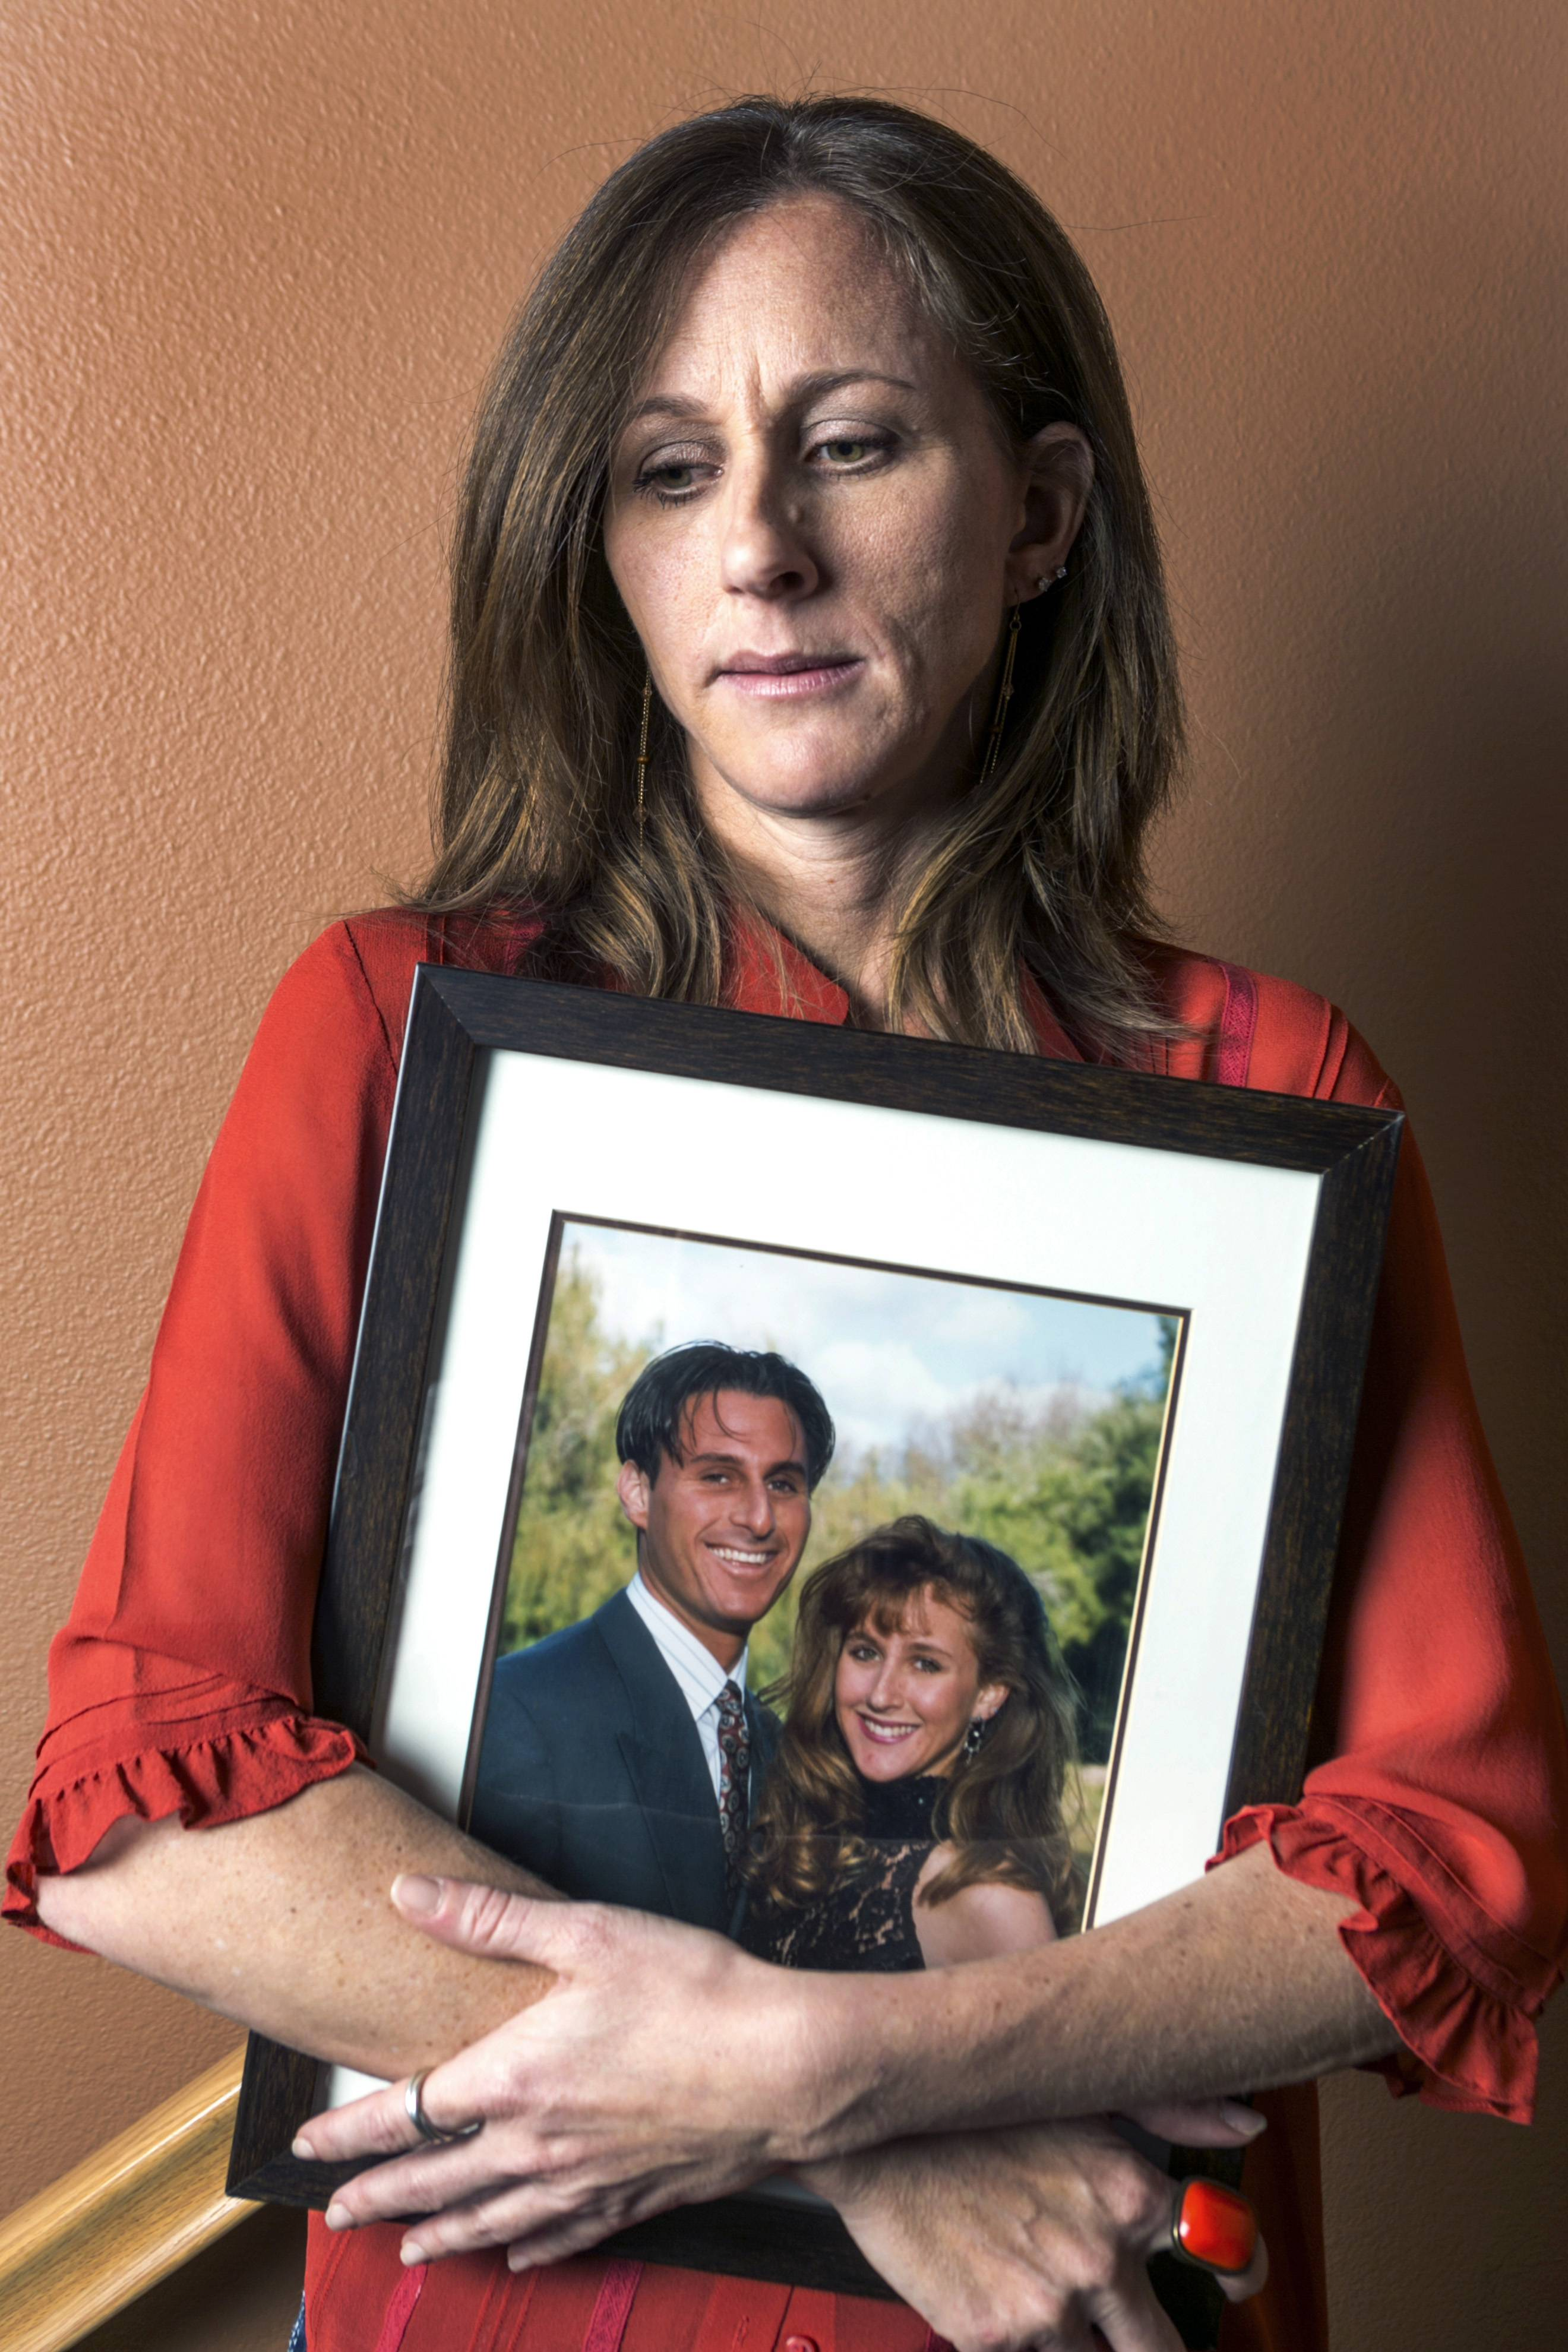 Kim Goldman holds a photo of her with her late brother, Ronald Goldman, murdered with his friend Nicole Brown Simpson in 1994, during an interview at her home in Santa Clarita, Calif. A civil jury awarded the Brown and Goldman families $33.5 million in wrongful death damages, which the Goldmans are still trying to collect.